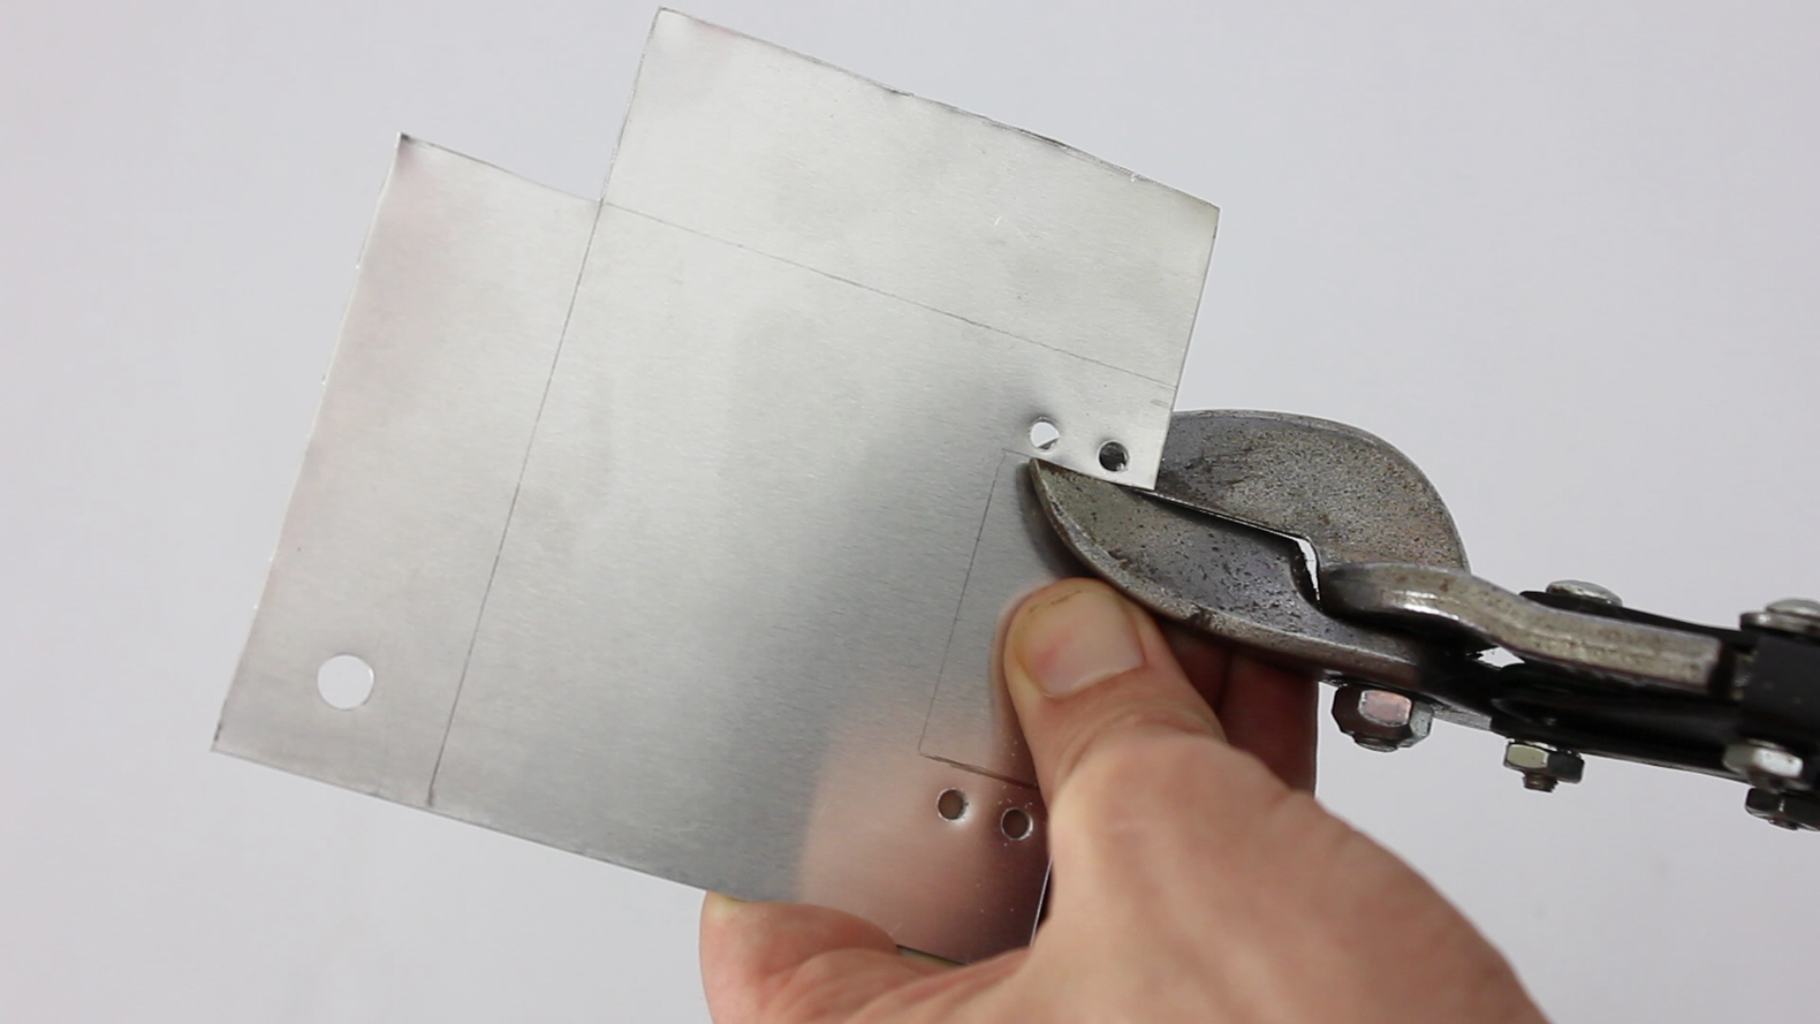 Mark and Cut the Camera Mounting Plate